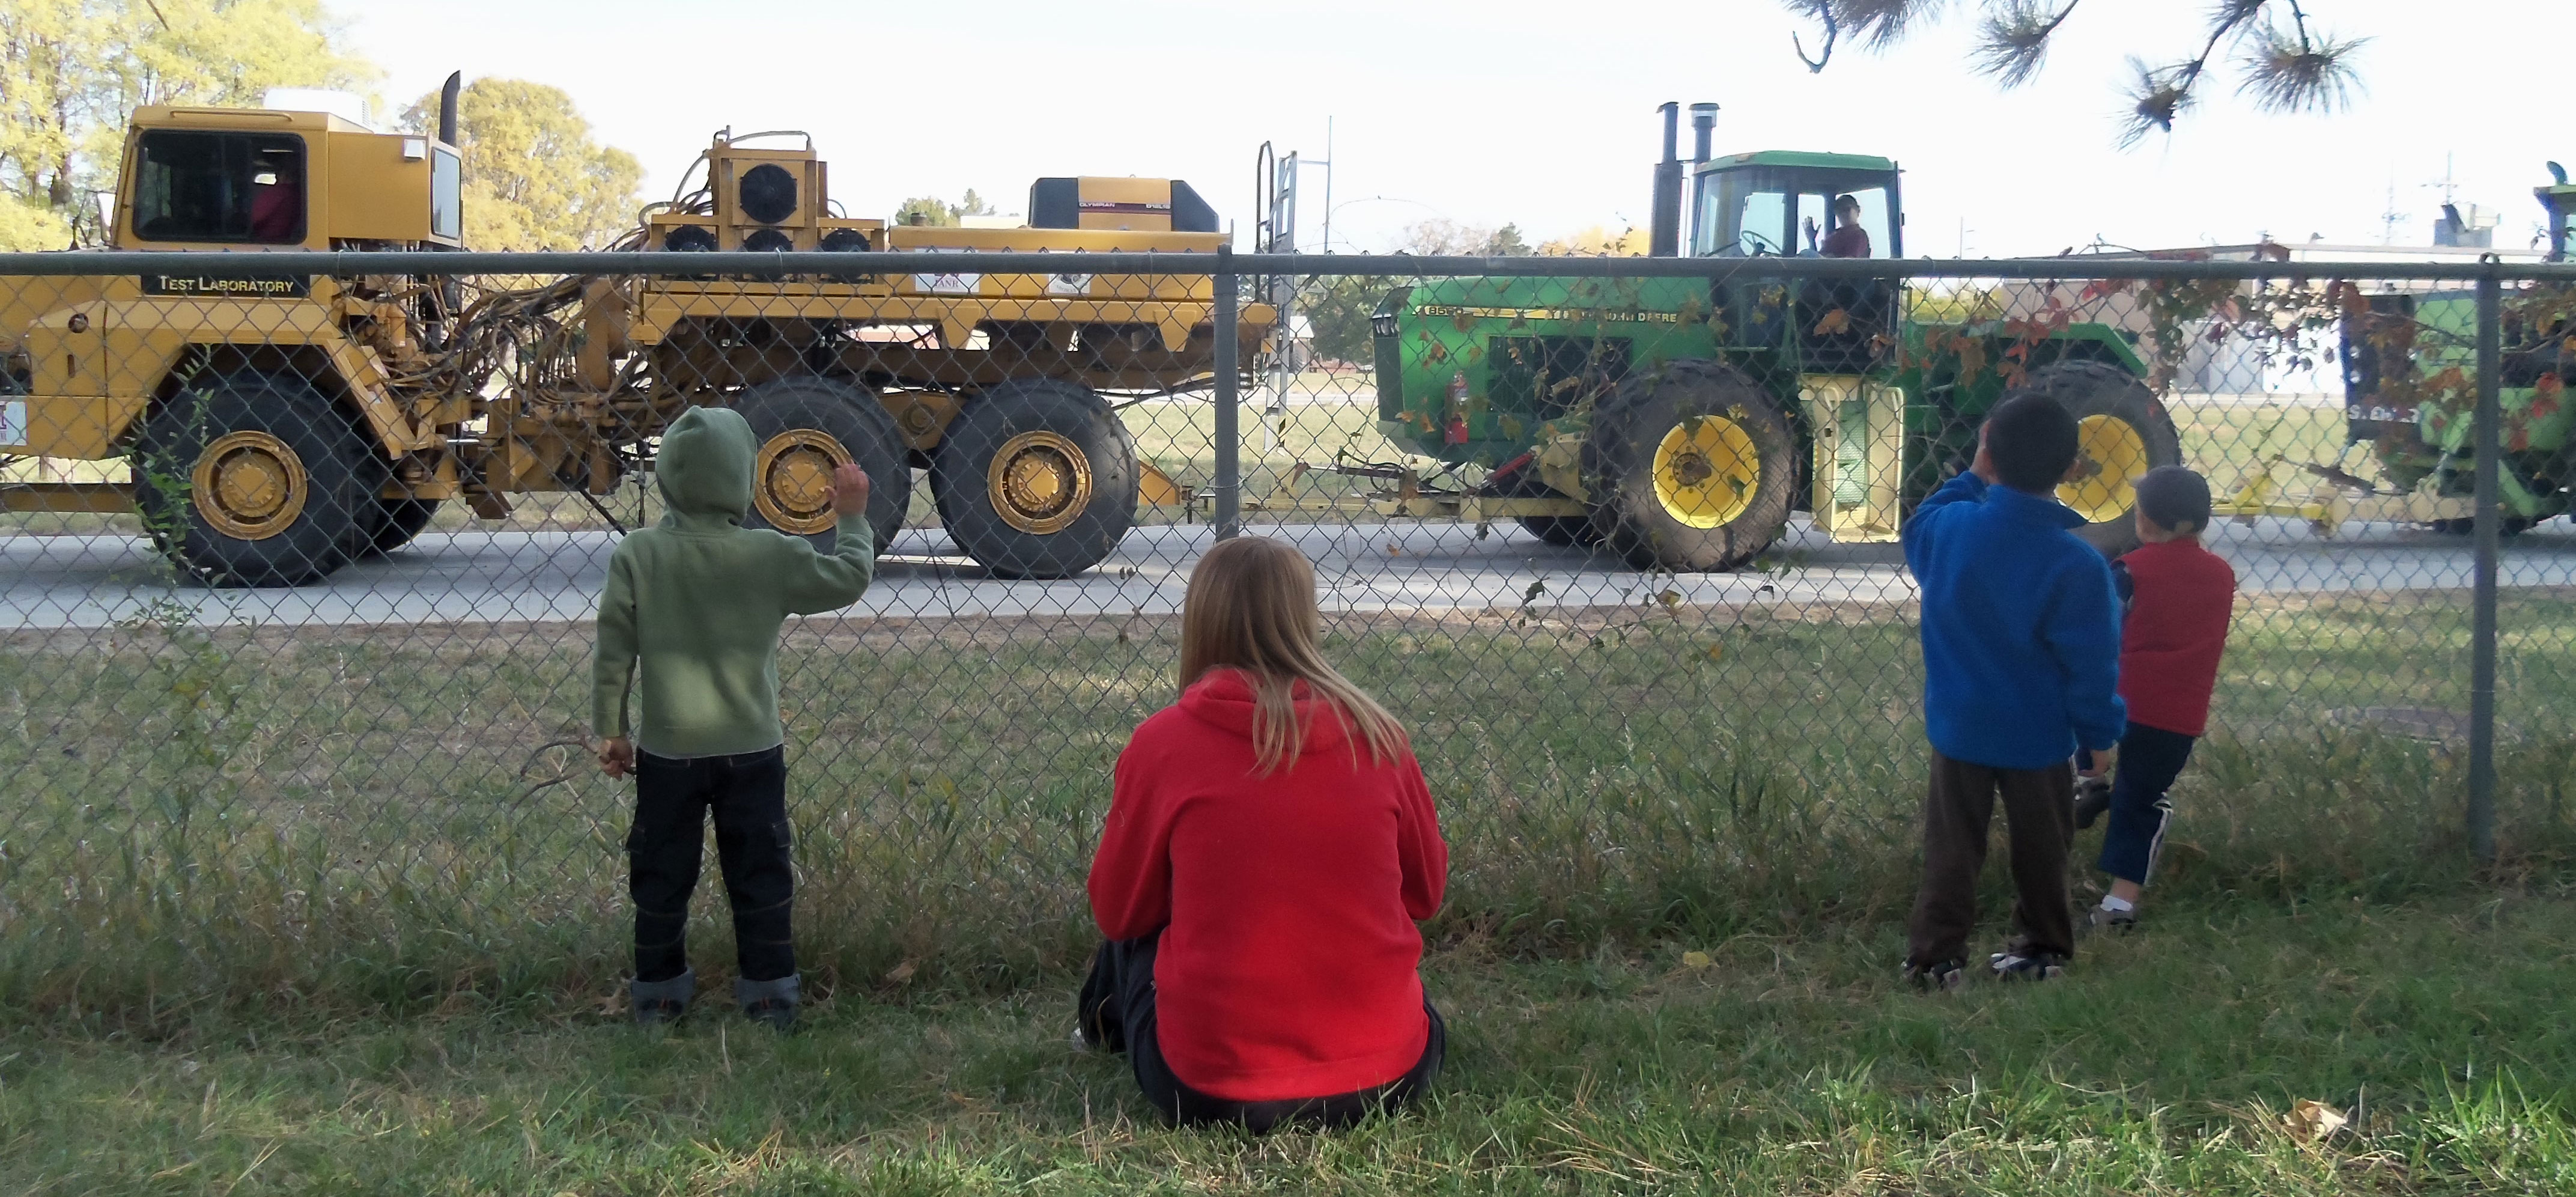 Looking at Tractors